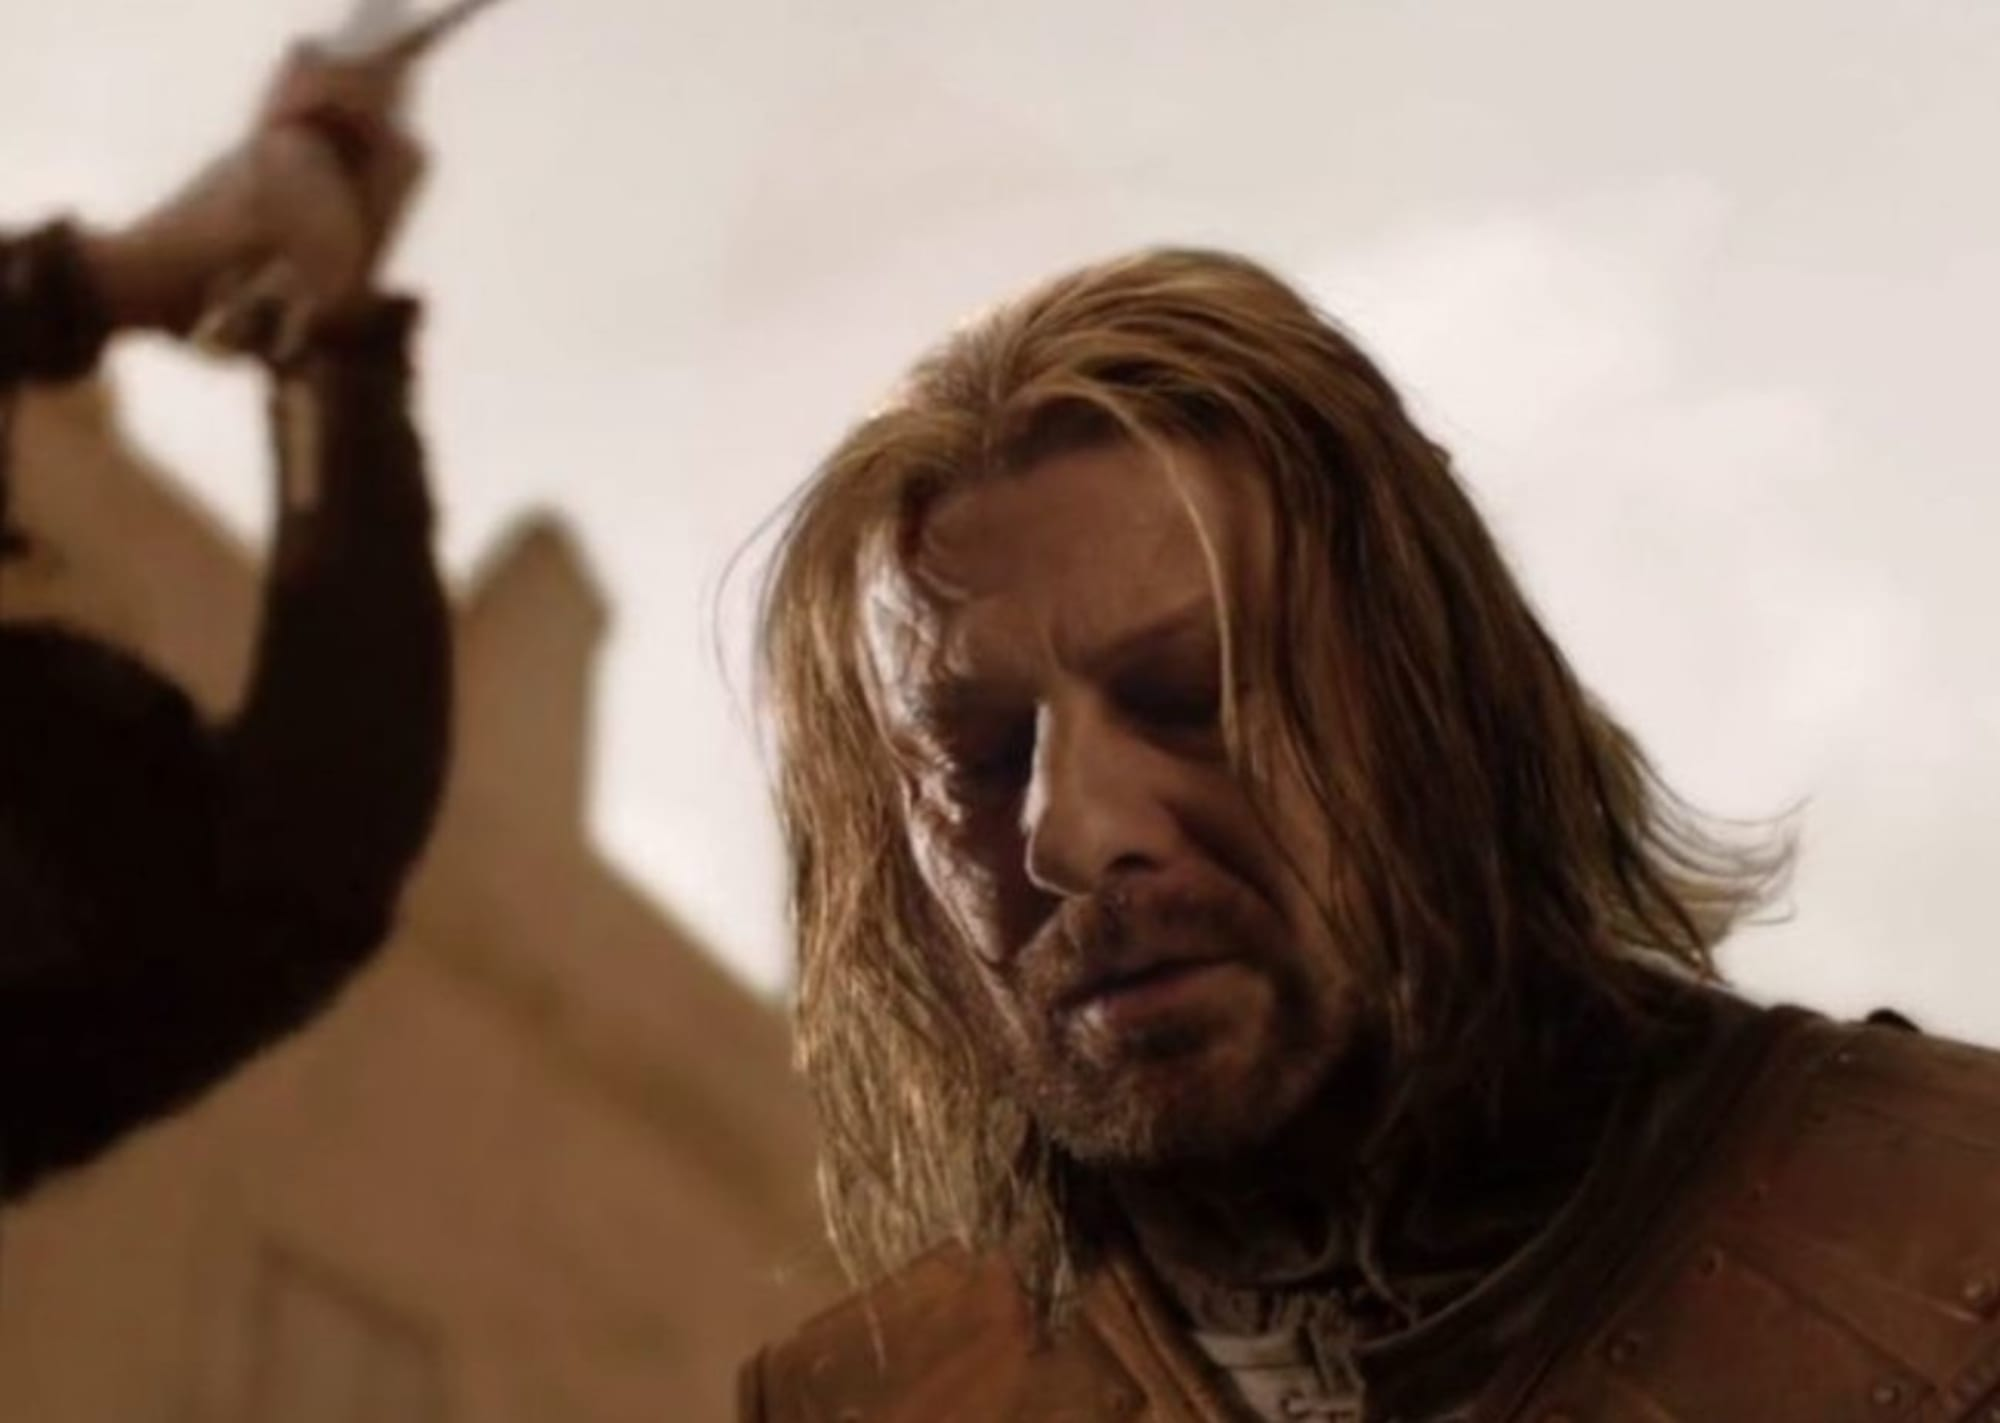 Game of Thrones director explains why there shouldn't be a GoT movie